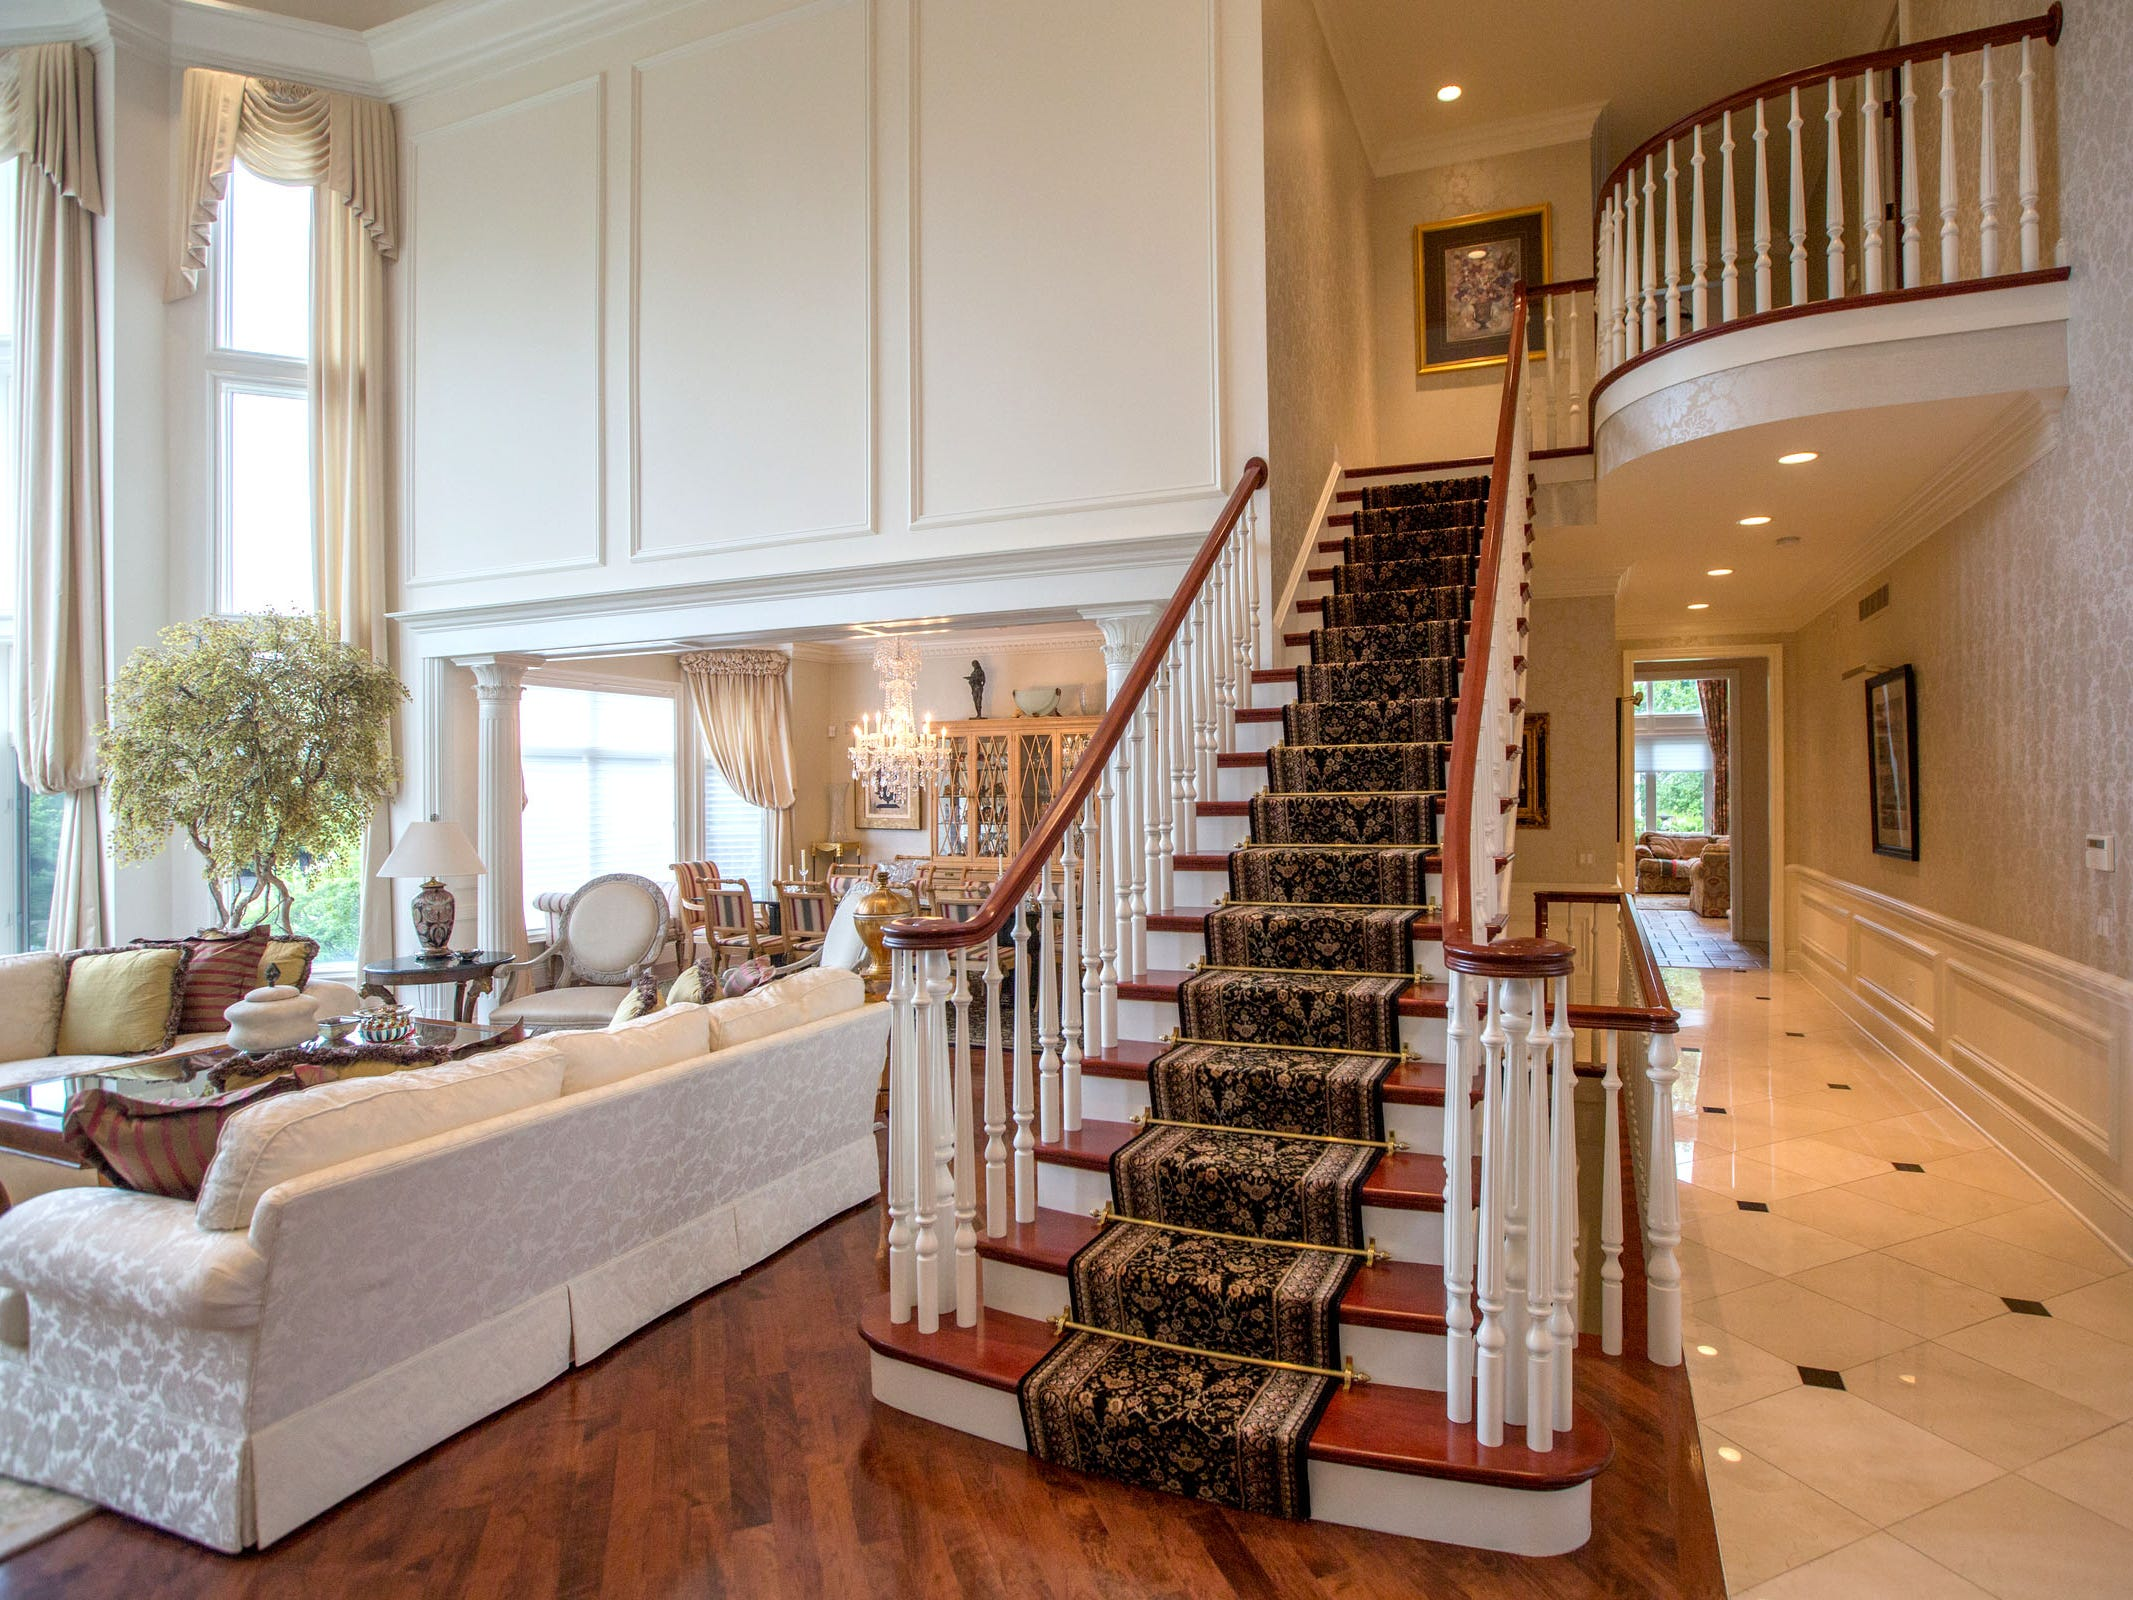 """It has four staircases that may remind you of a line from """"Fiddler On the Roof."""" """"Two staircases go up,"""" the owner said, """"to reach the second floor, and two more go down to the lower party level."""""""